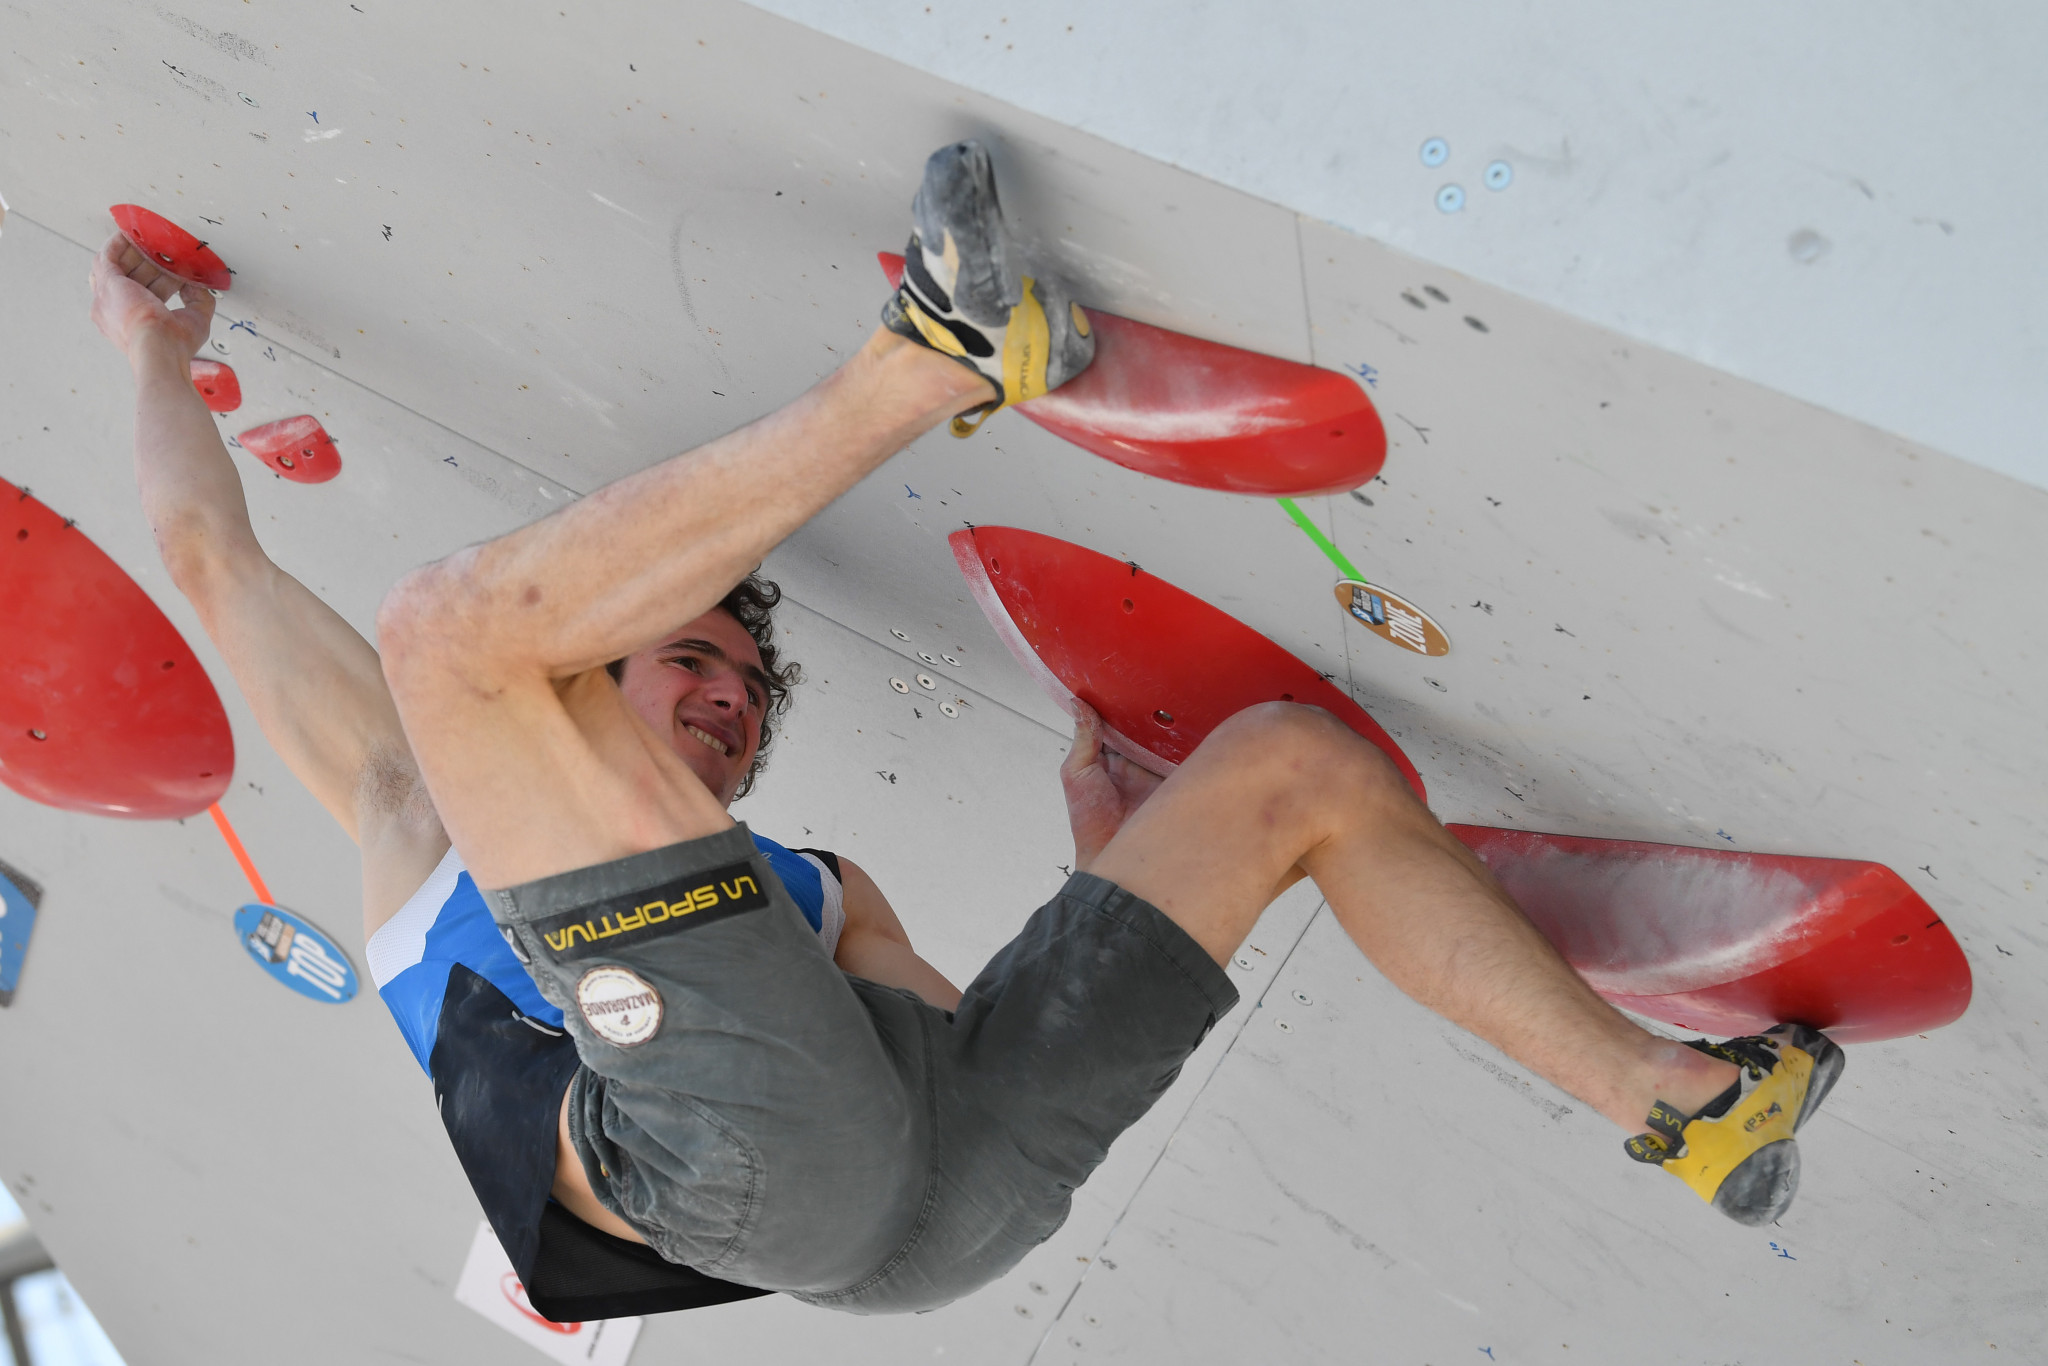 Adam Ondra was the stand-out performer today in men's bouldering qualifying at the IFSC World Championships ©Getty Images